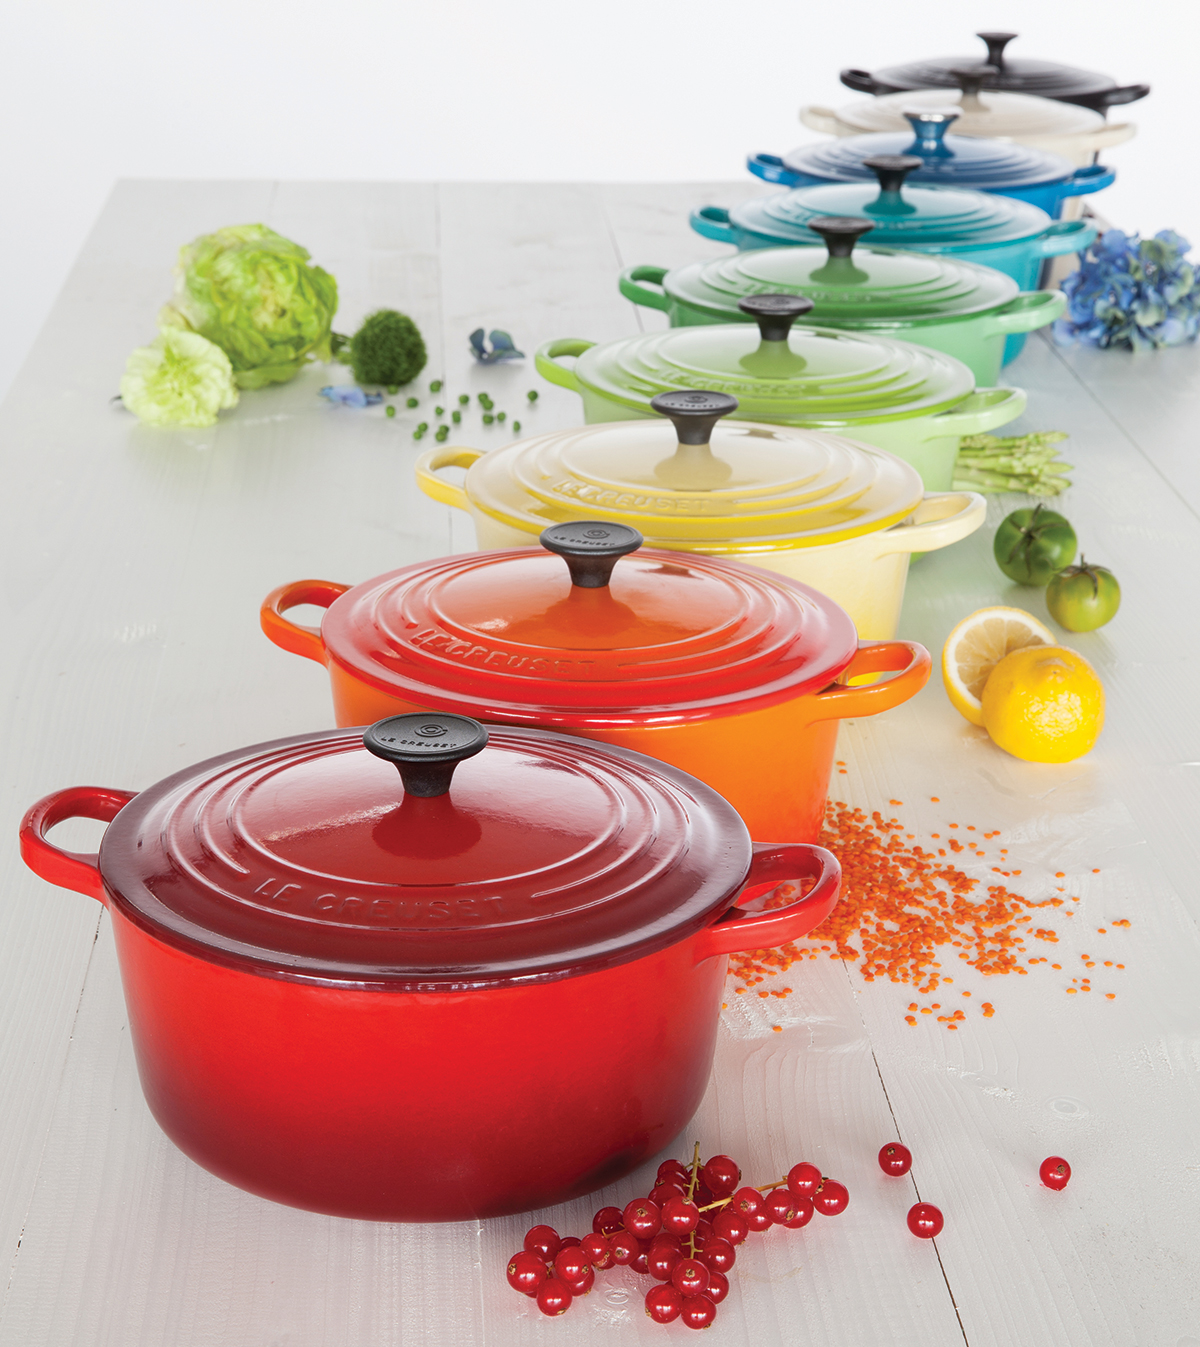 le creuset le creuset casserole size guide. Black Bedroom Furniture Sets. Home Design Ideas